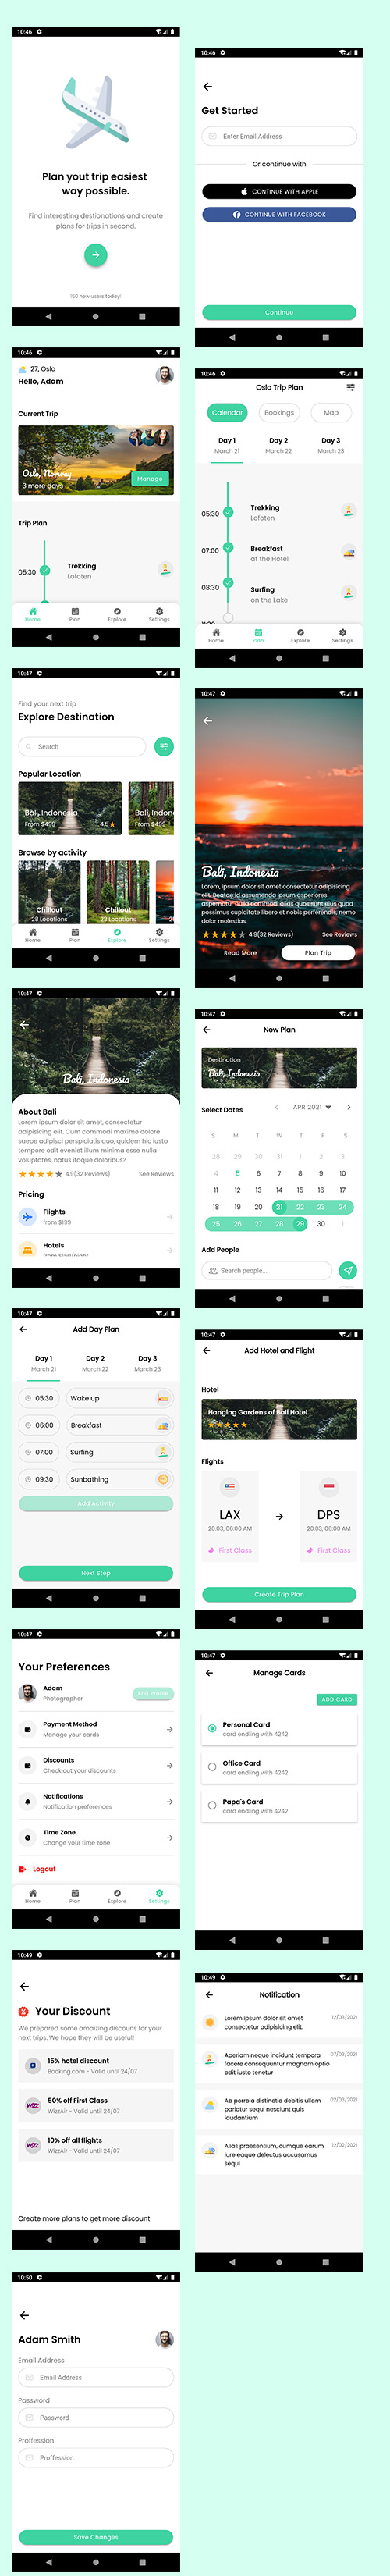 ionic 5 template bundle  / ionic 5 themes bundles / ionic 5 templates with 10+ apps - 12